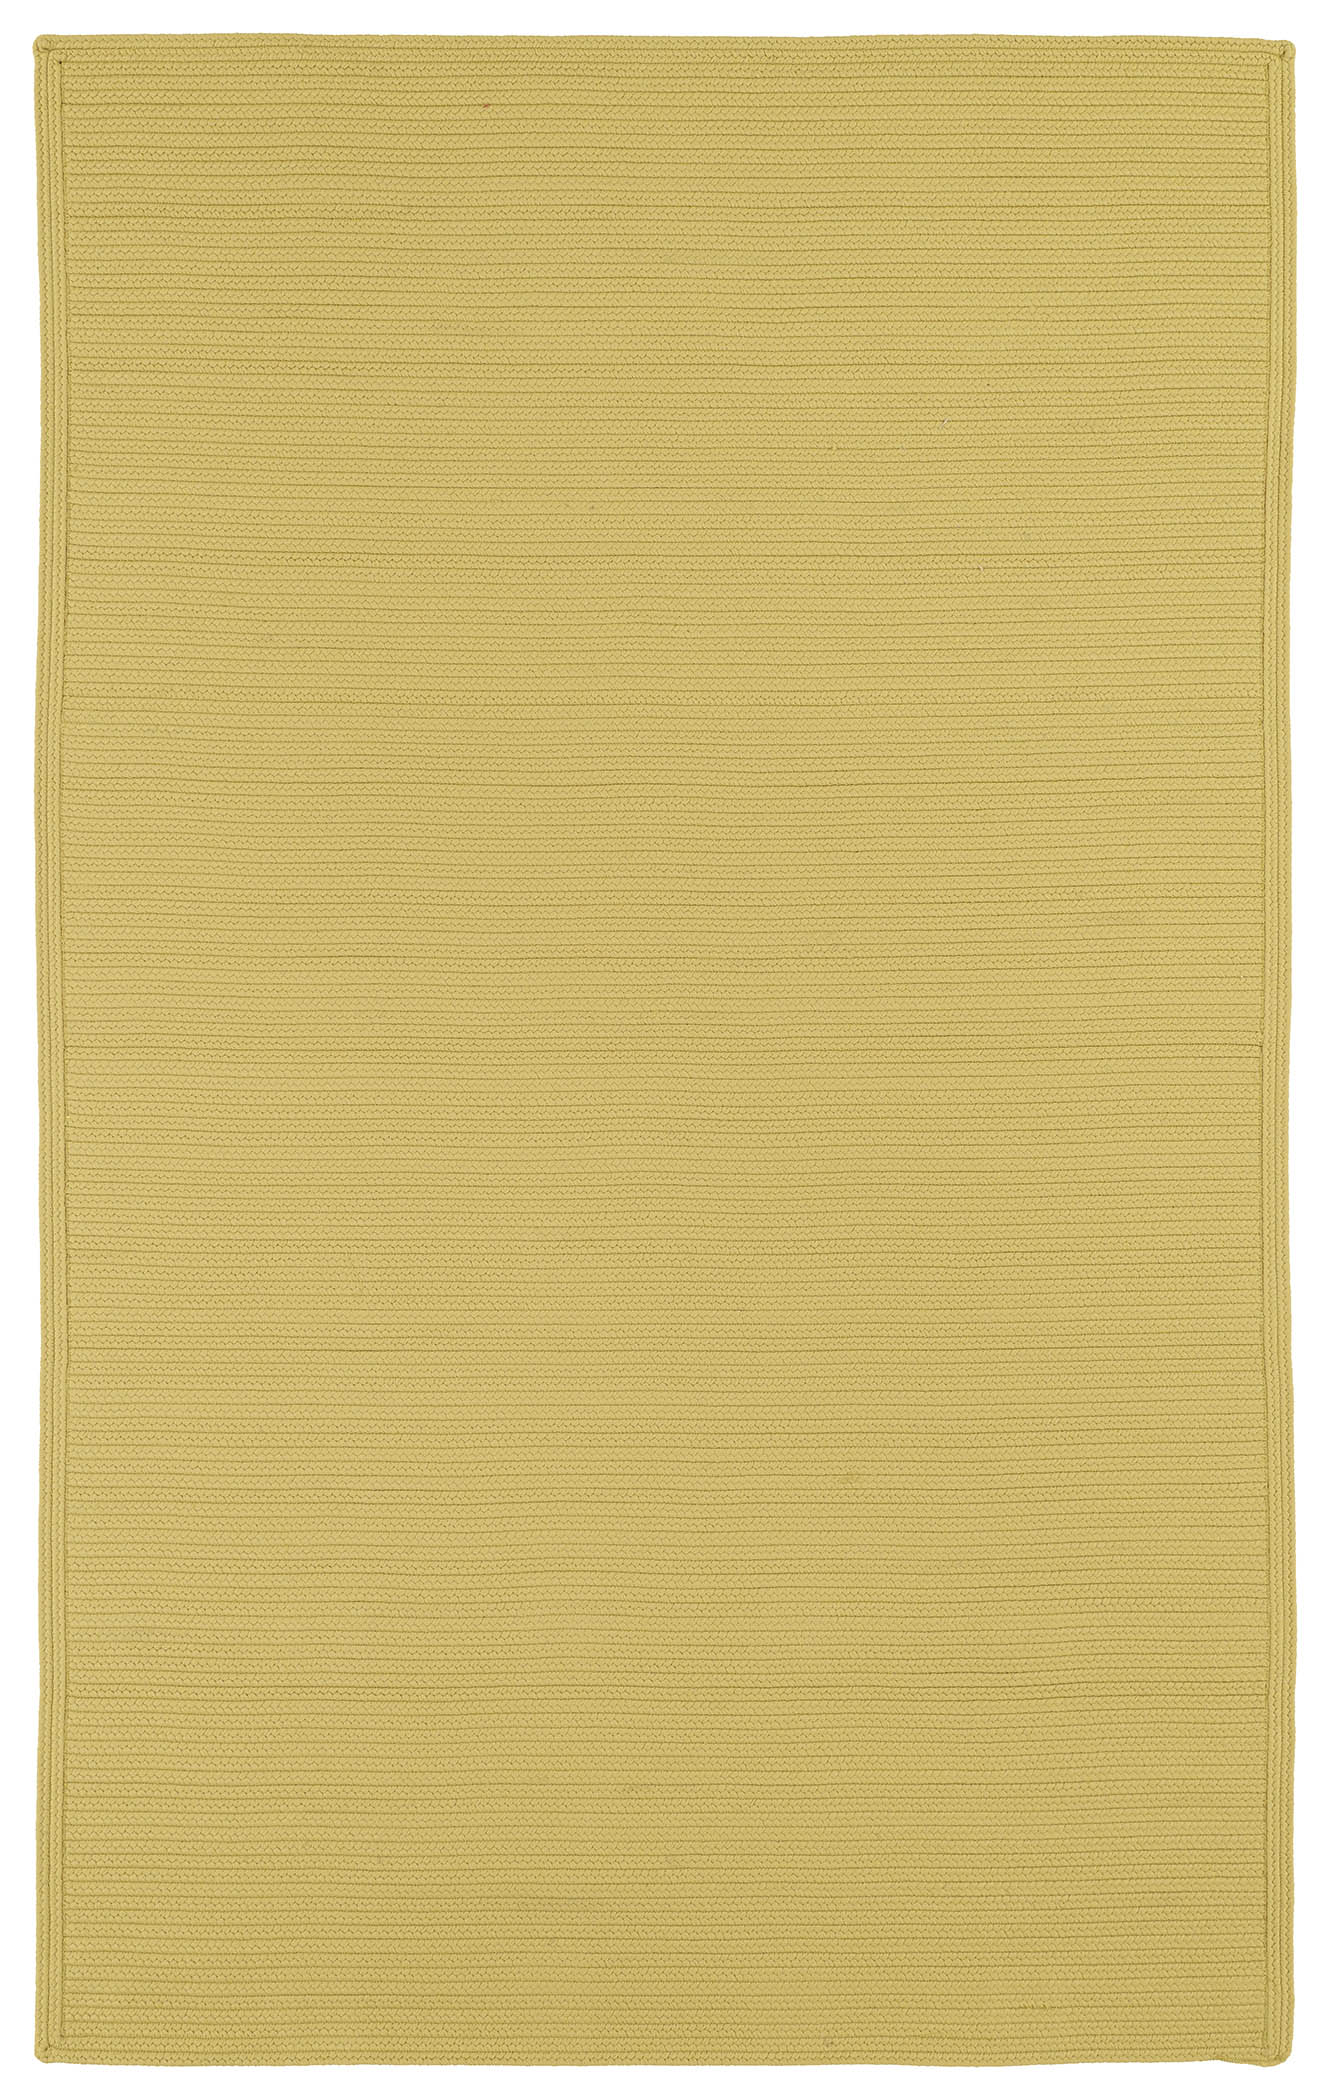 Bikini 3020 Maize 72 Outdoor Rug by Kaleen